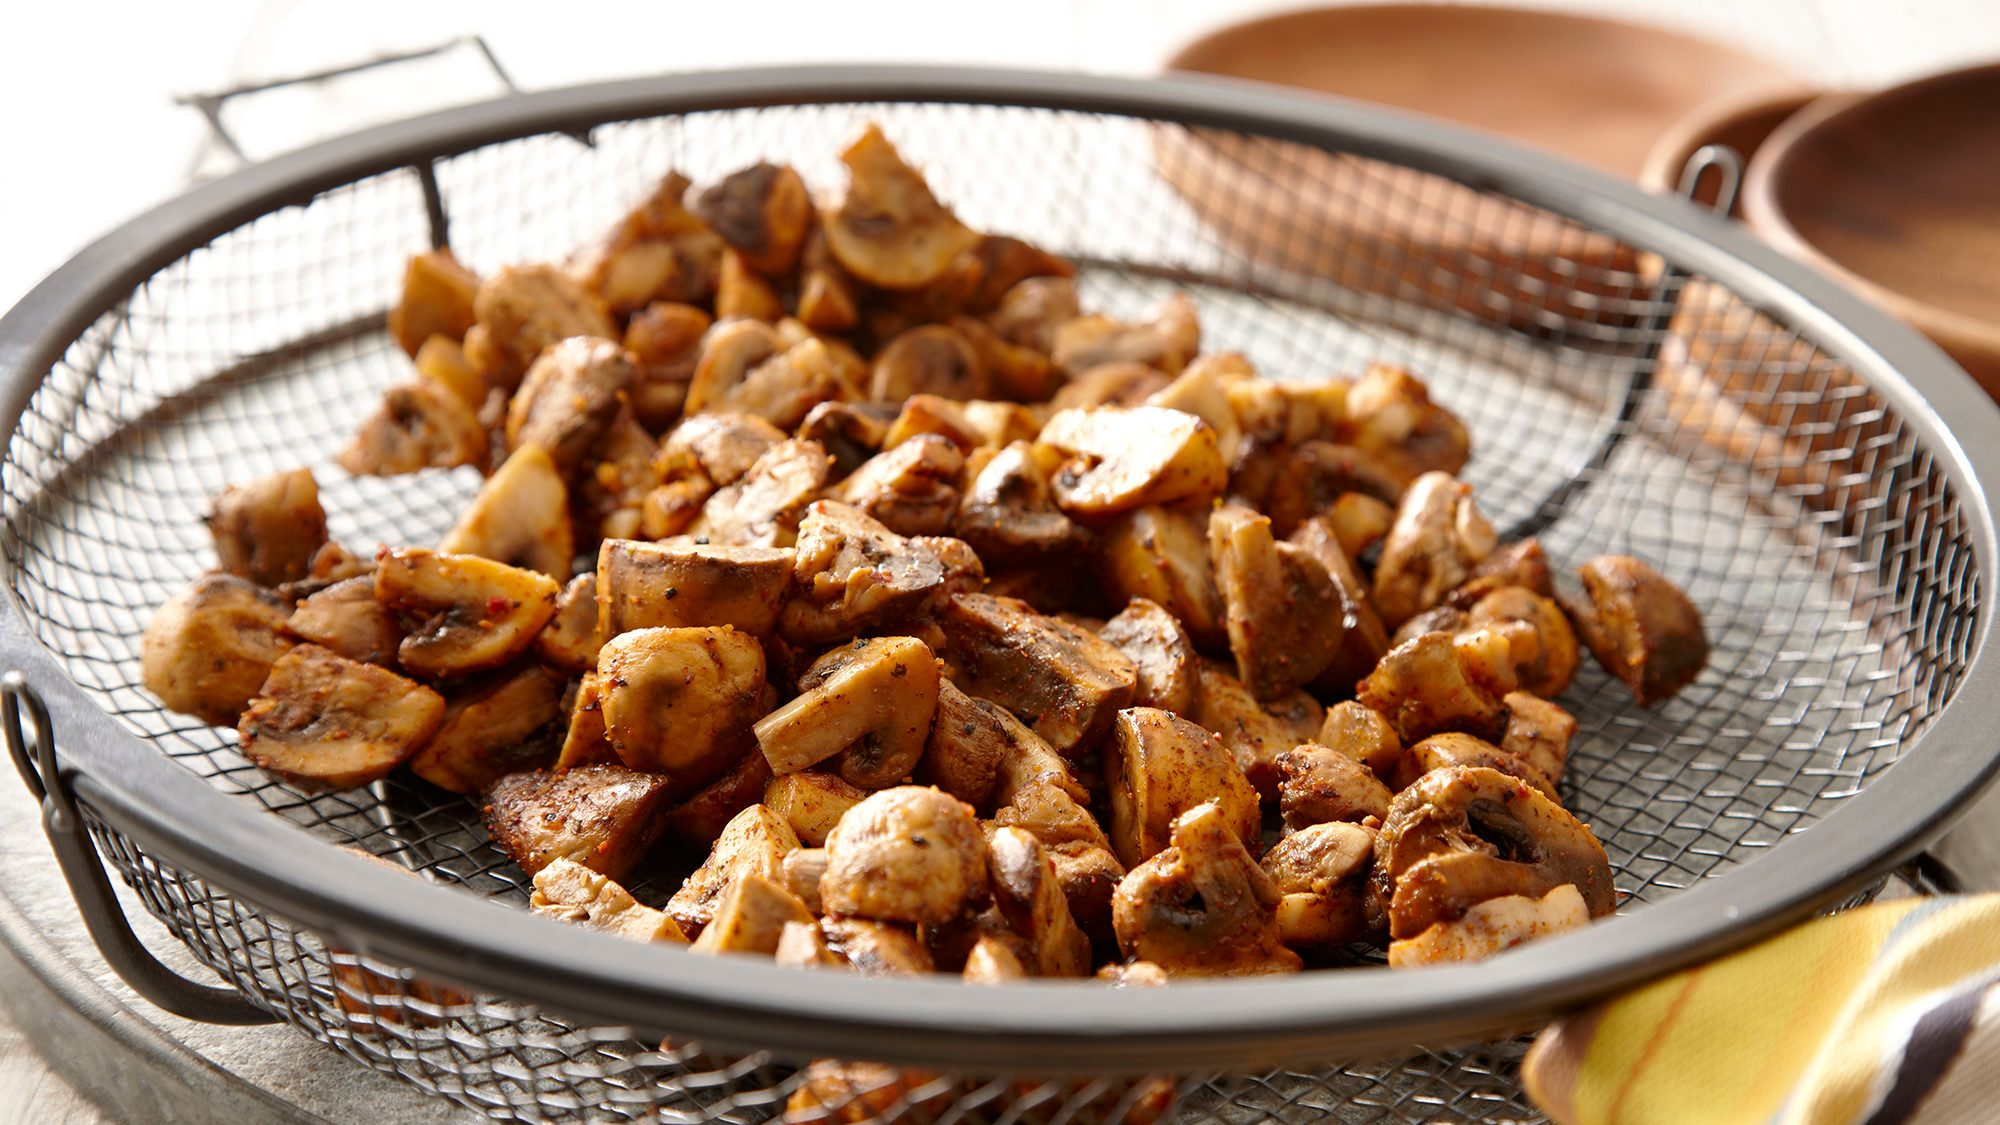 McCormick Grill Mates Barbecue Seasoned Mushrooms